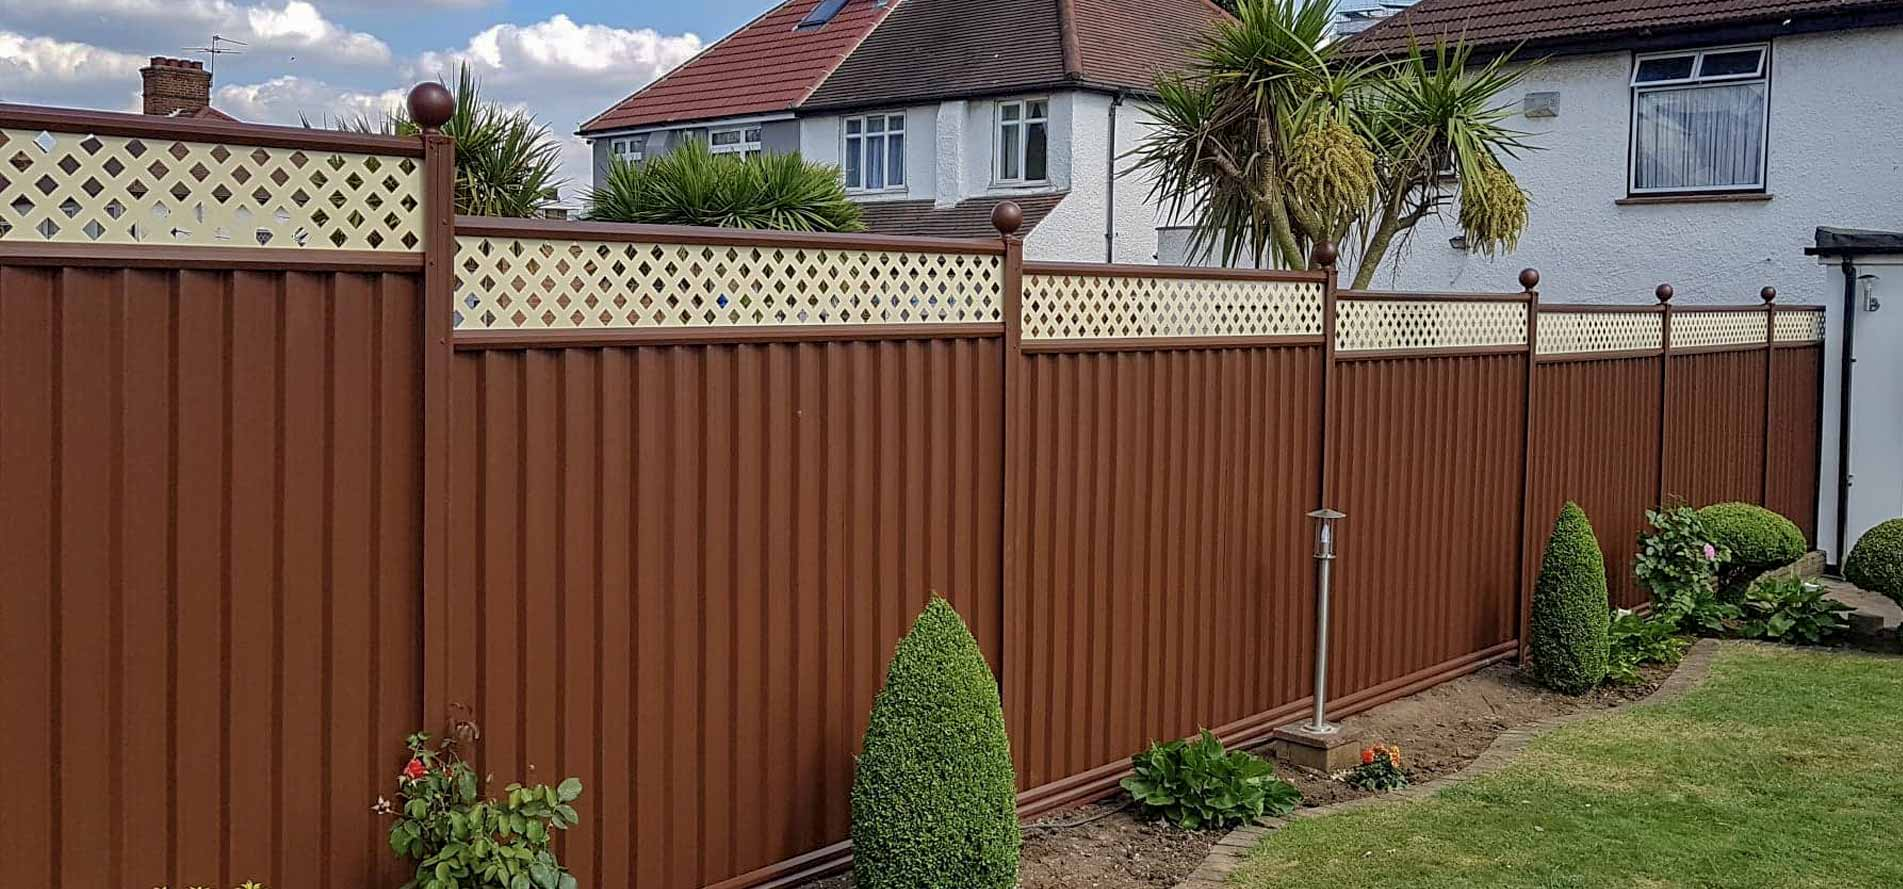 Metal garden fencing in Ely